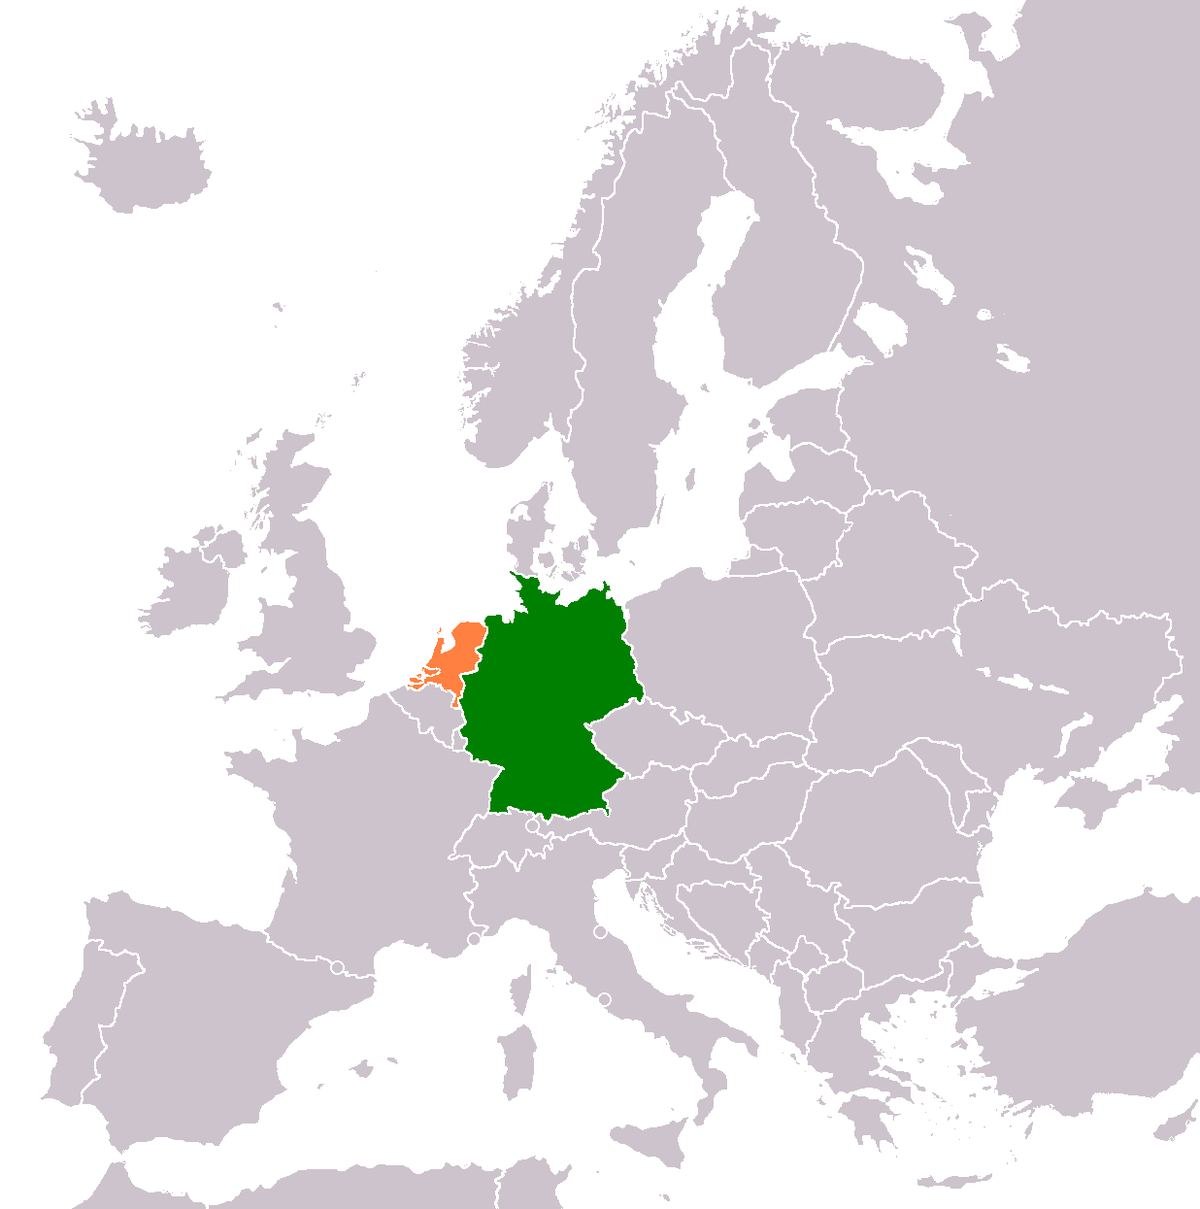 GermanyNetherlands Relations Wikipedia - Netherlands germany map